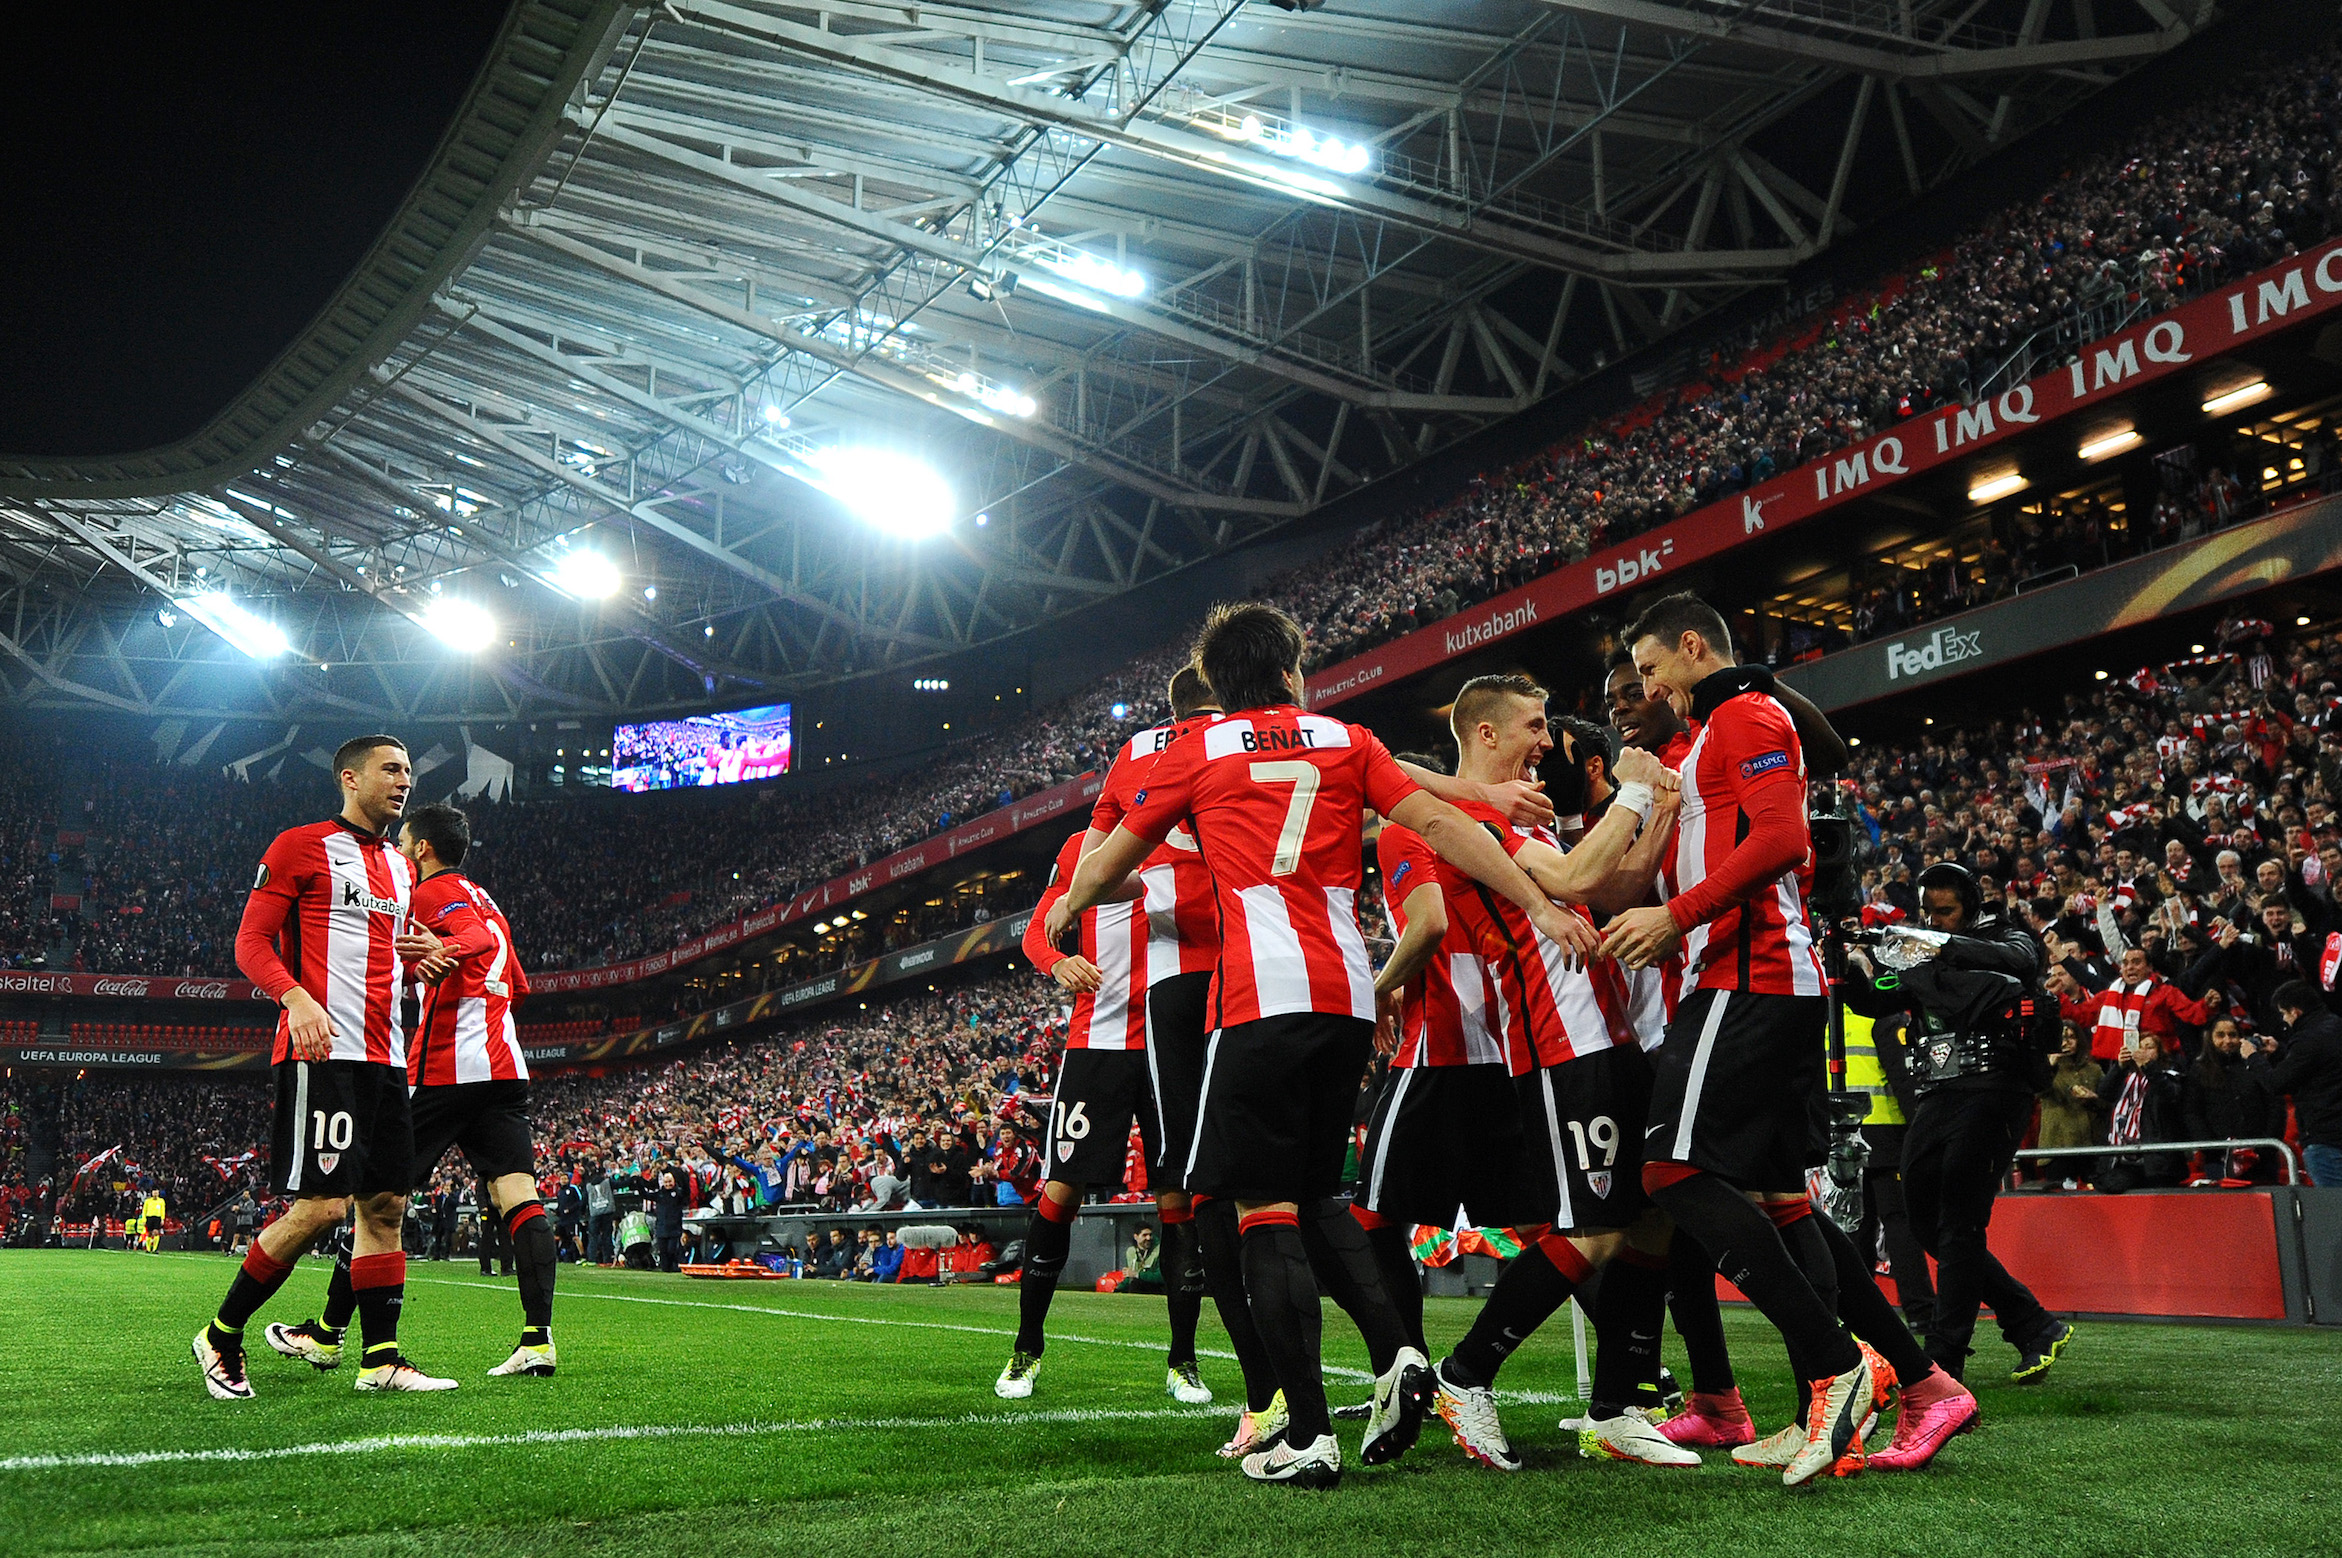 BILBAO, SPAIN - APRIL 07: Aritz Aduriz of Athletic Club Bilbao (R) celebrates with team mates as he scores their first goal during the UEFA Europa League quarter final first leg match between Athletic Bilbao and Sevilla at San Mames Stadium on April 7, 2016 in Bilbao, Spain. (Photo by David Ramos/Getty Images)